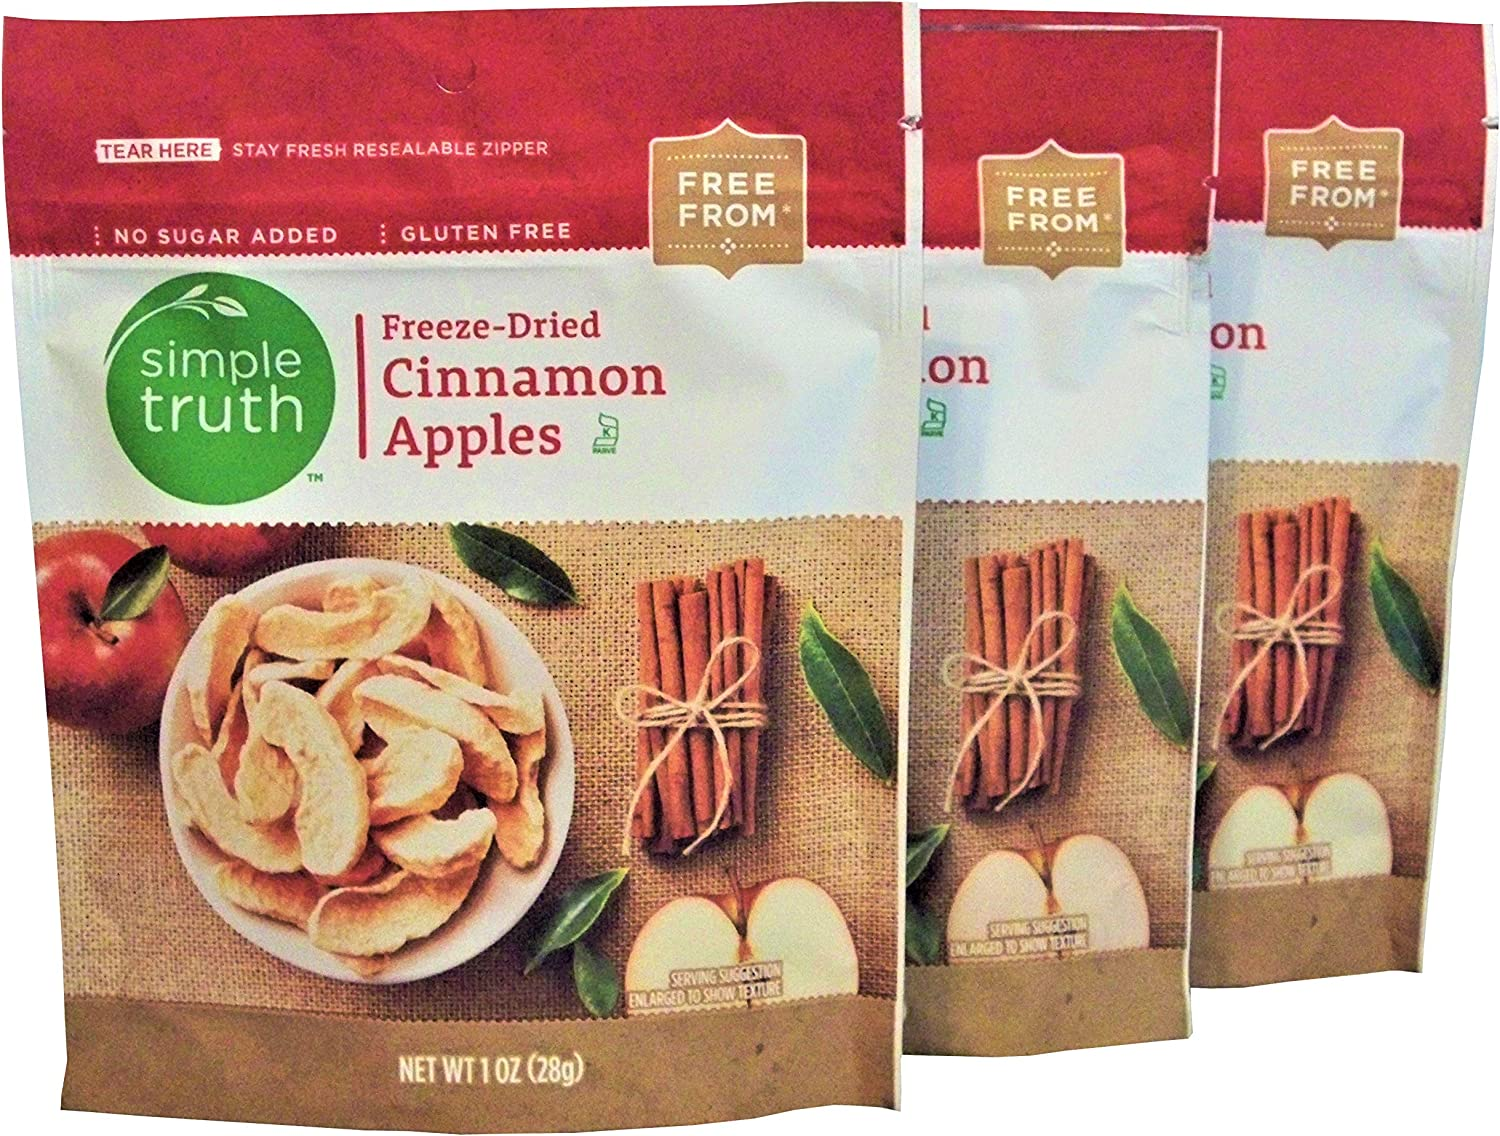 Simple Truth Freeze-Dried Cinnamon Apples 1 oz (3 Pack)